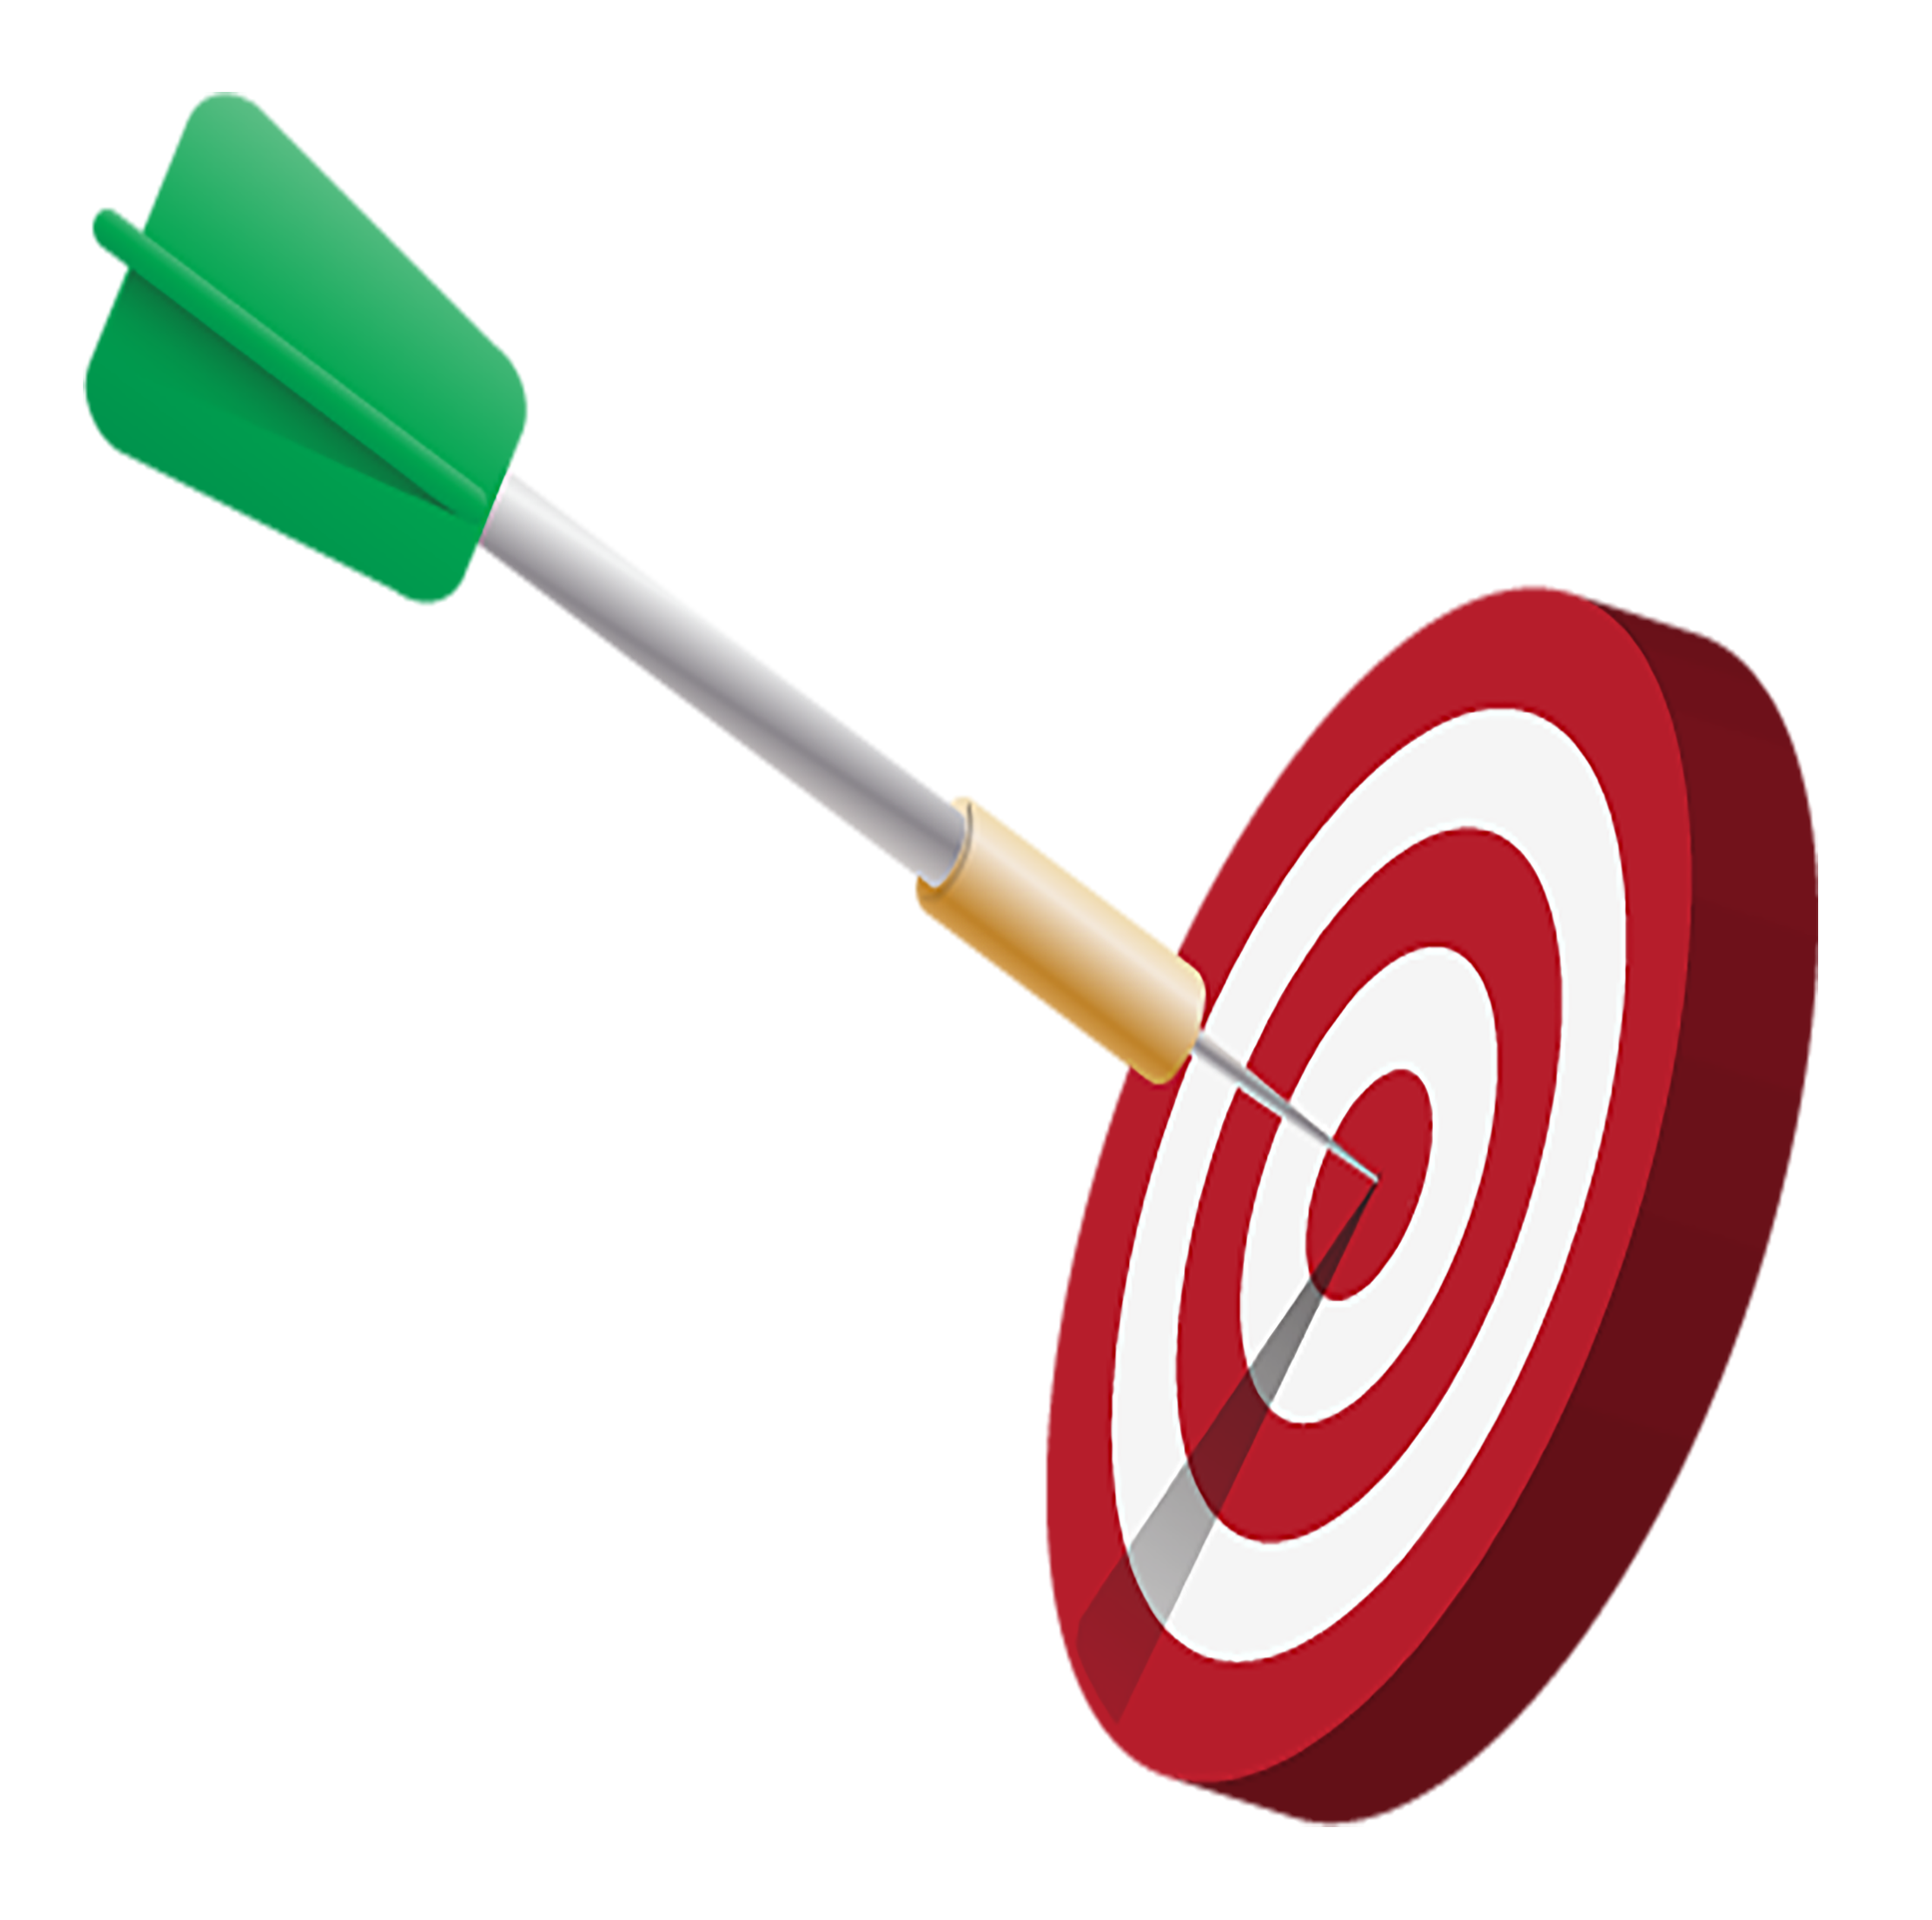 Dart clipart dartboard. Png images pngpix with